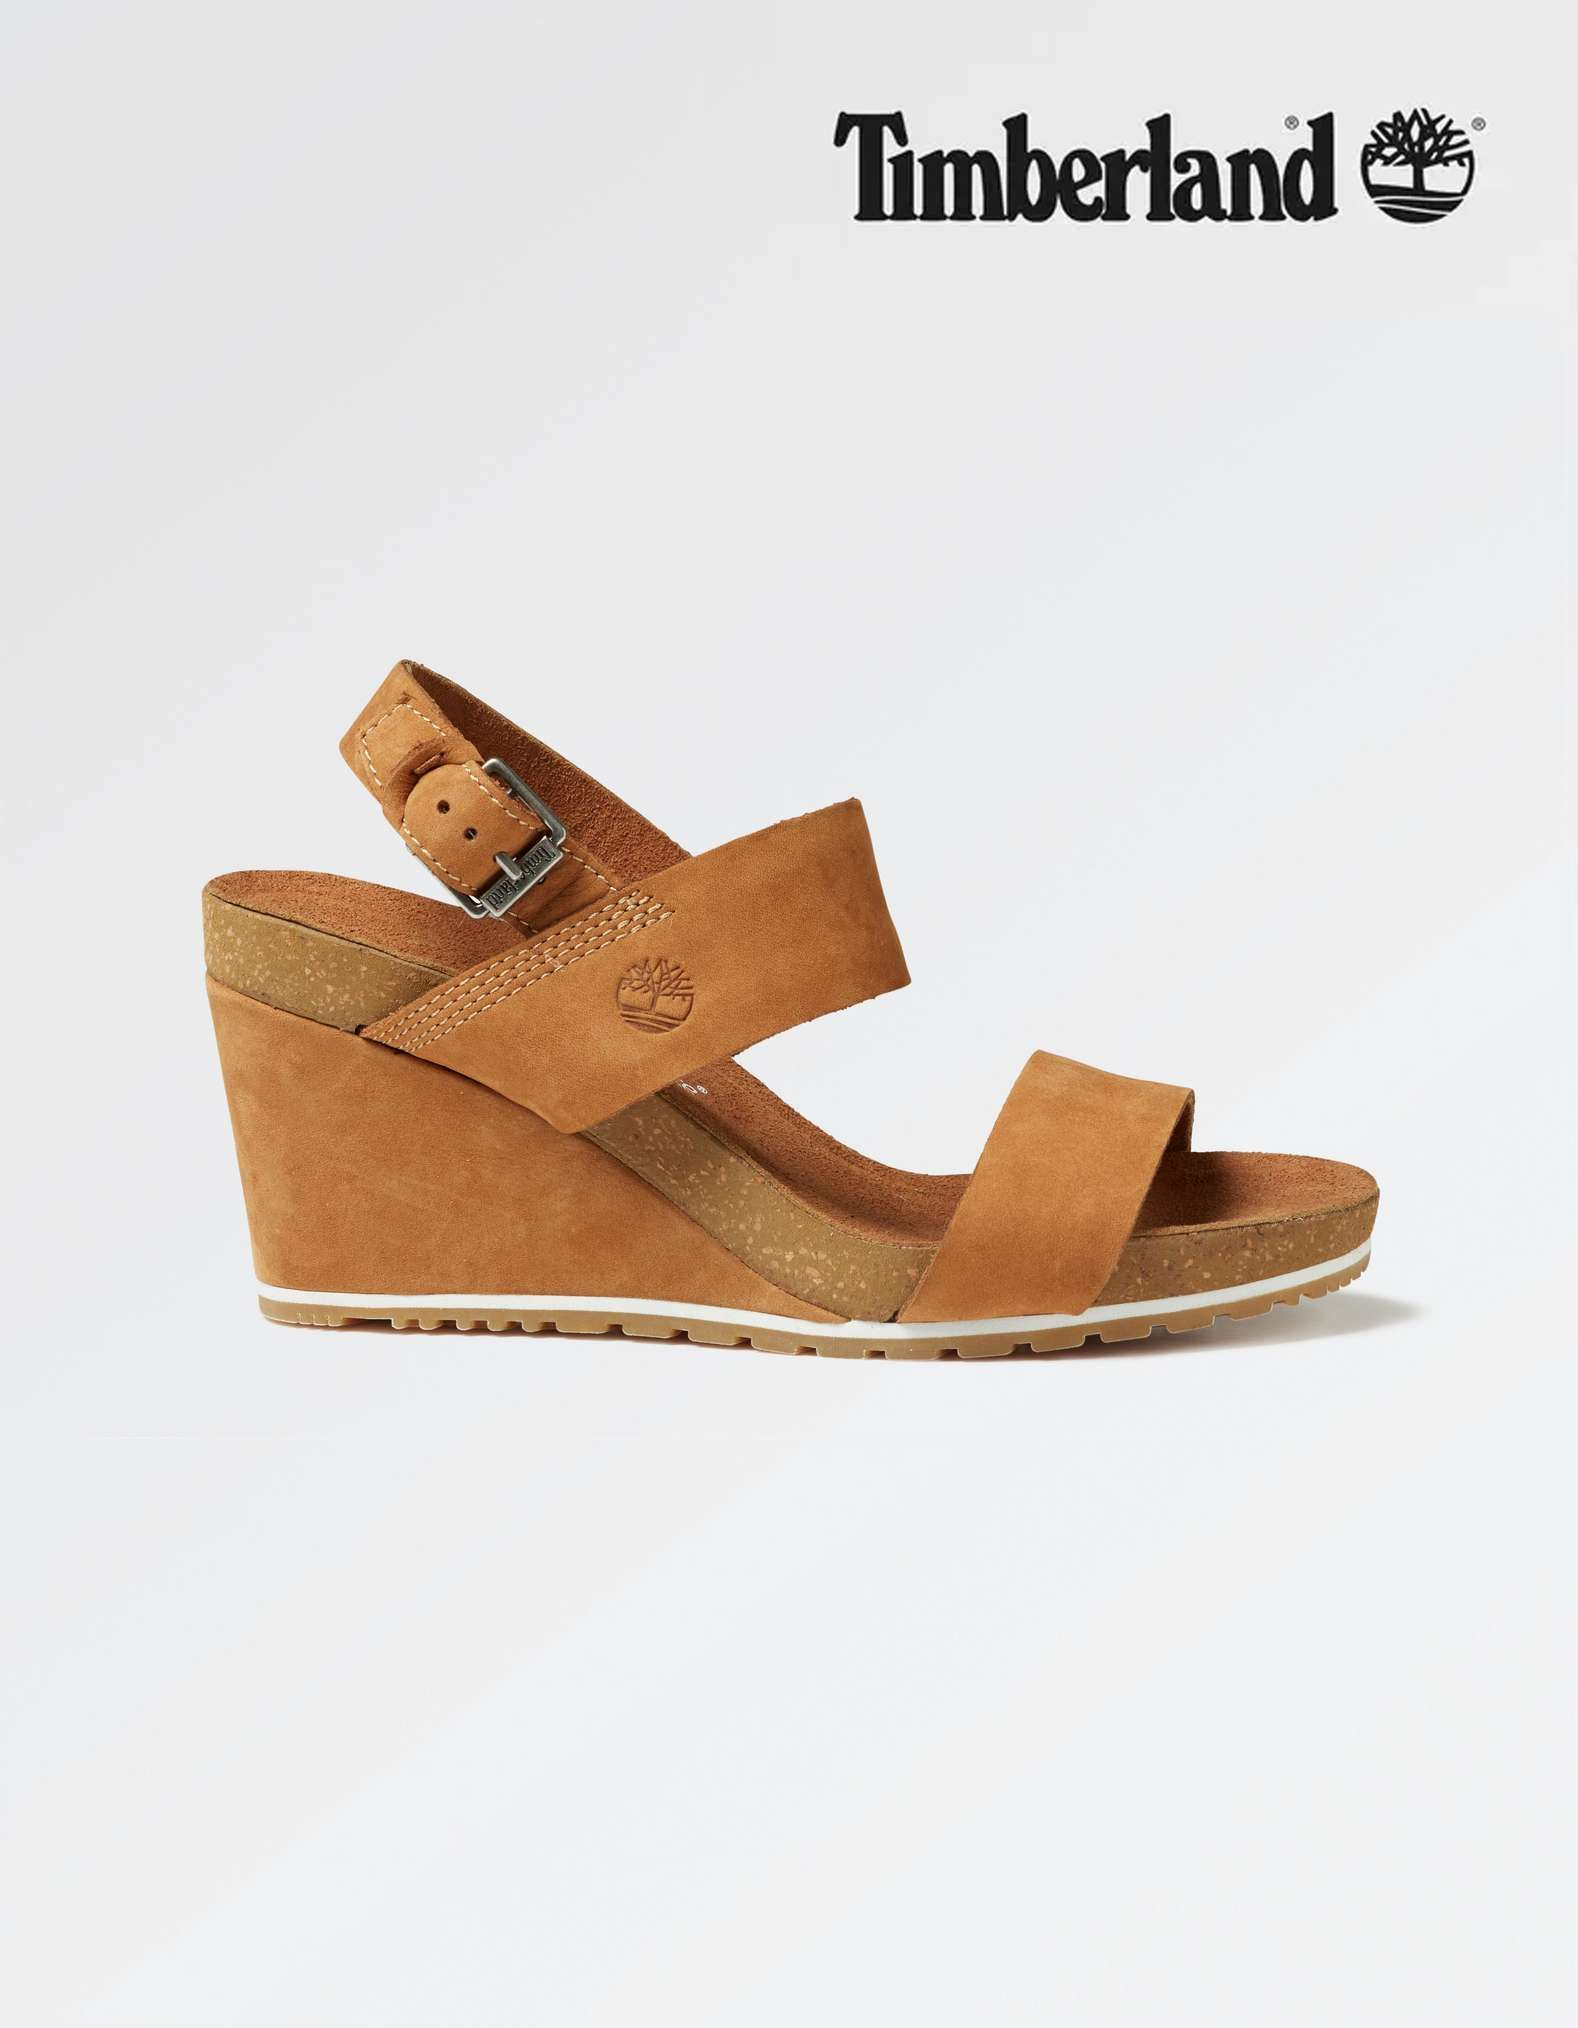 6a5275176038e3 Timberland Capri Sunset Wedge Sandals | Summer 2018 shopping list ...